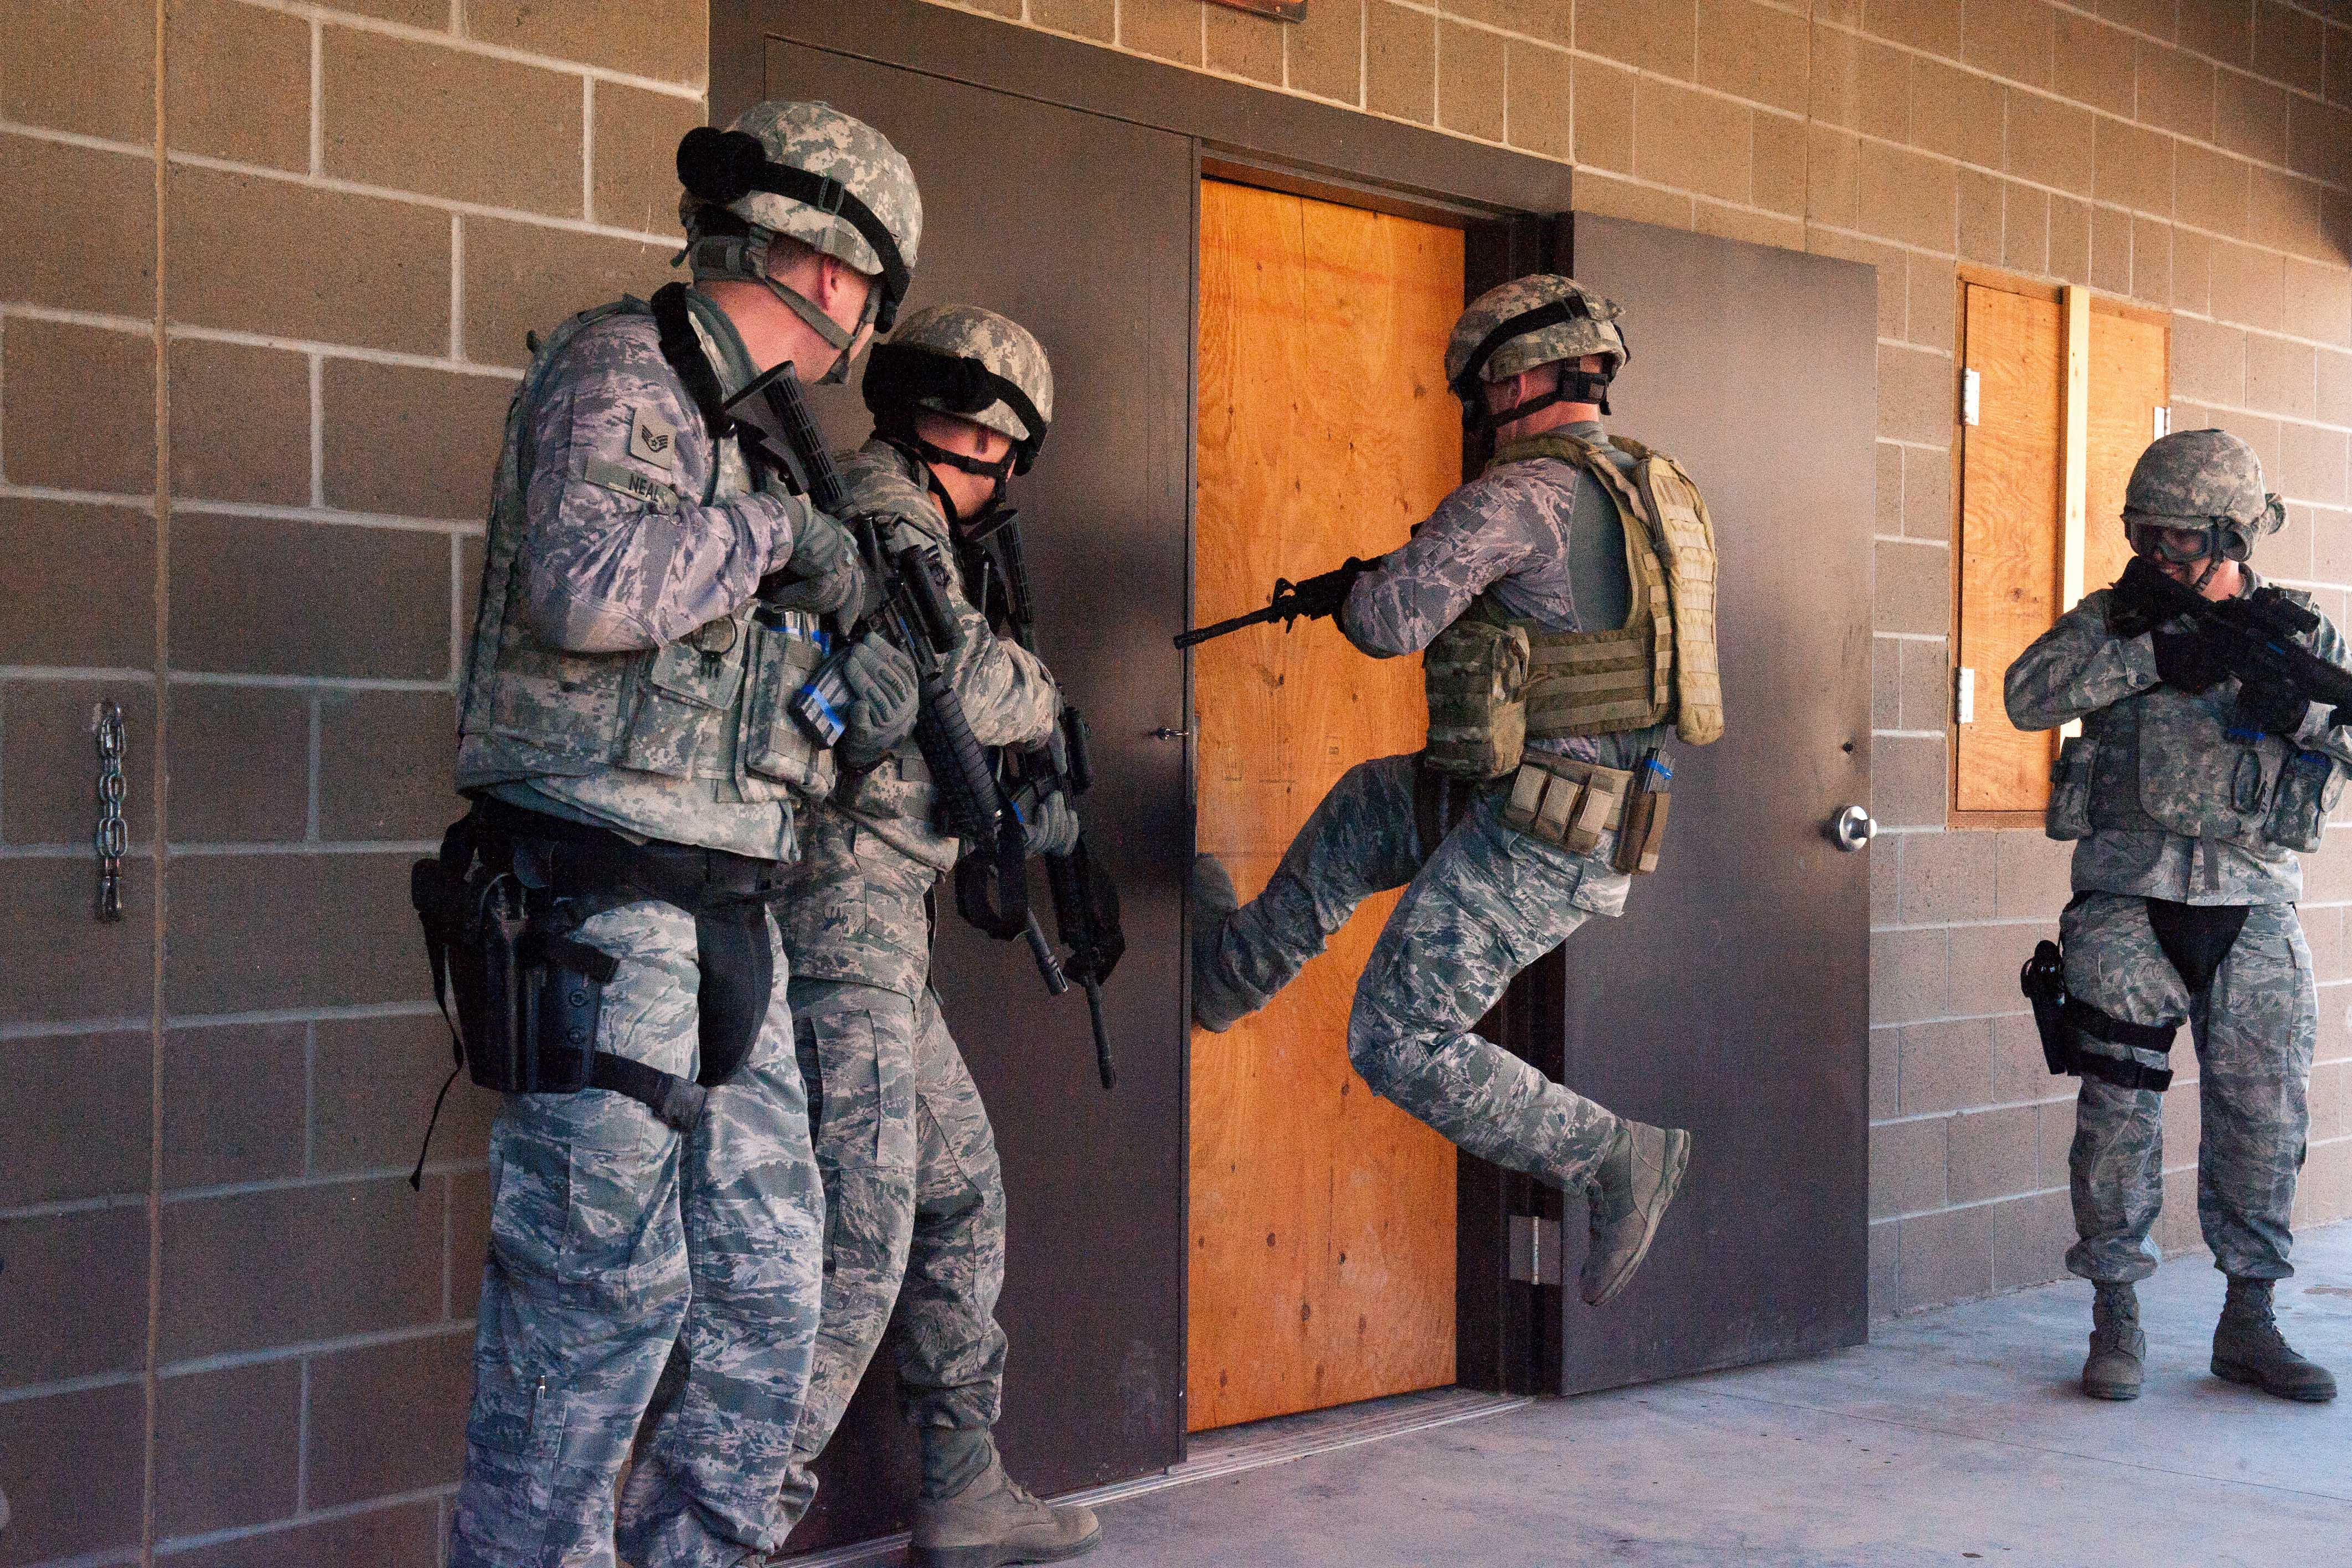 An airman attempts a jumping kick to breach a door during a shoot move and & U.S. DEPARTMENT OF DEFENSE \u003e Photos \u003e Photo Gallery